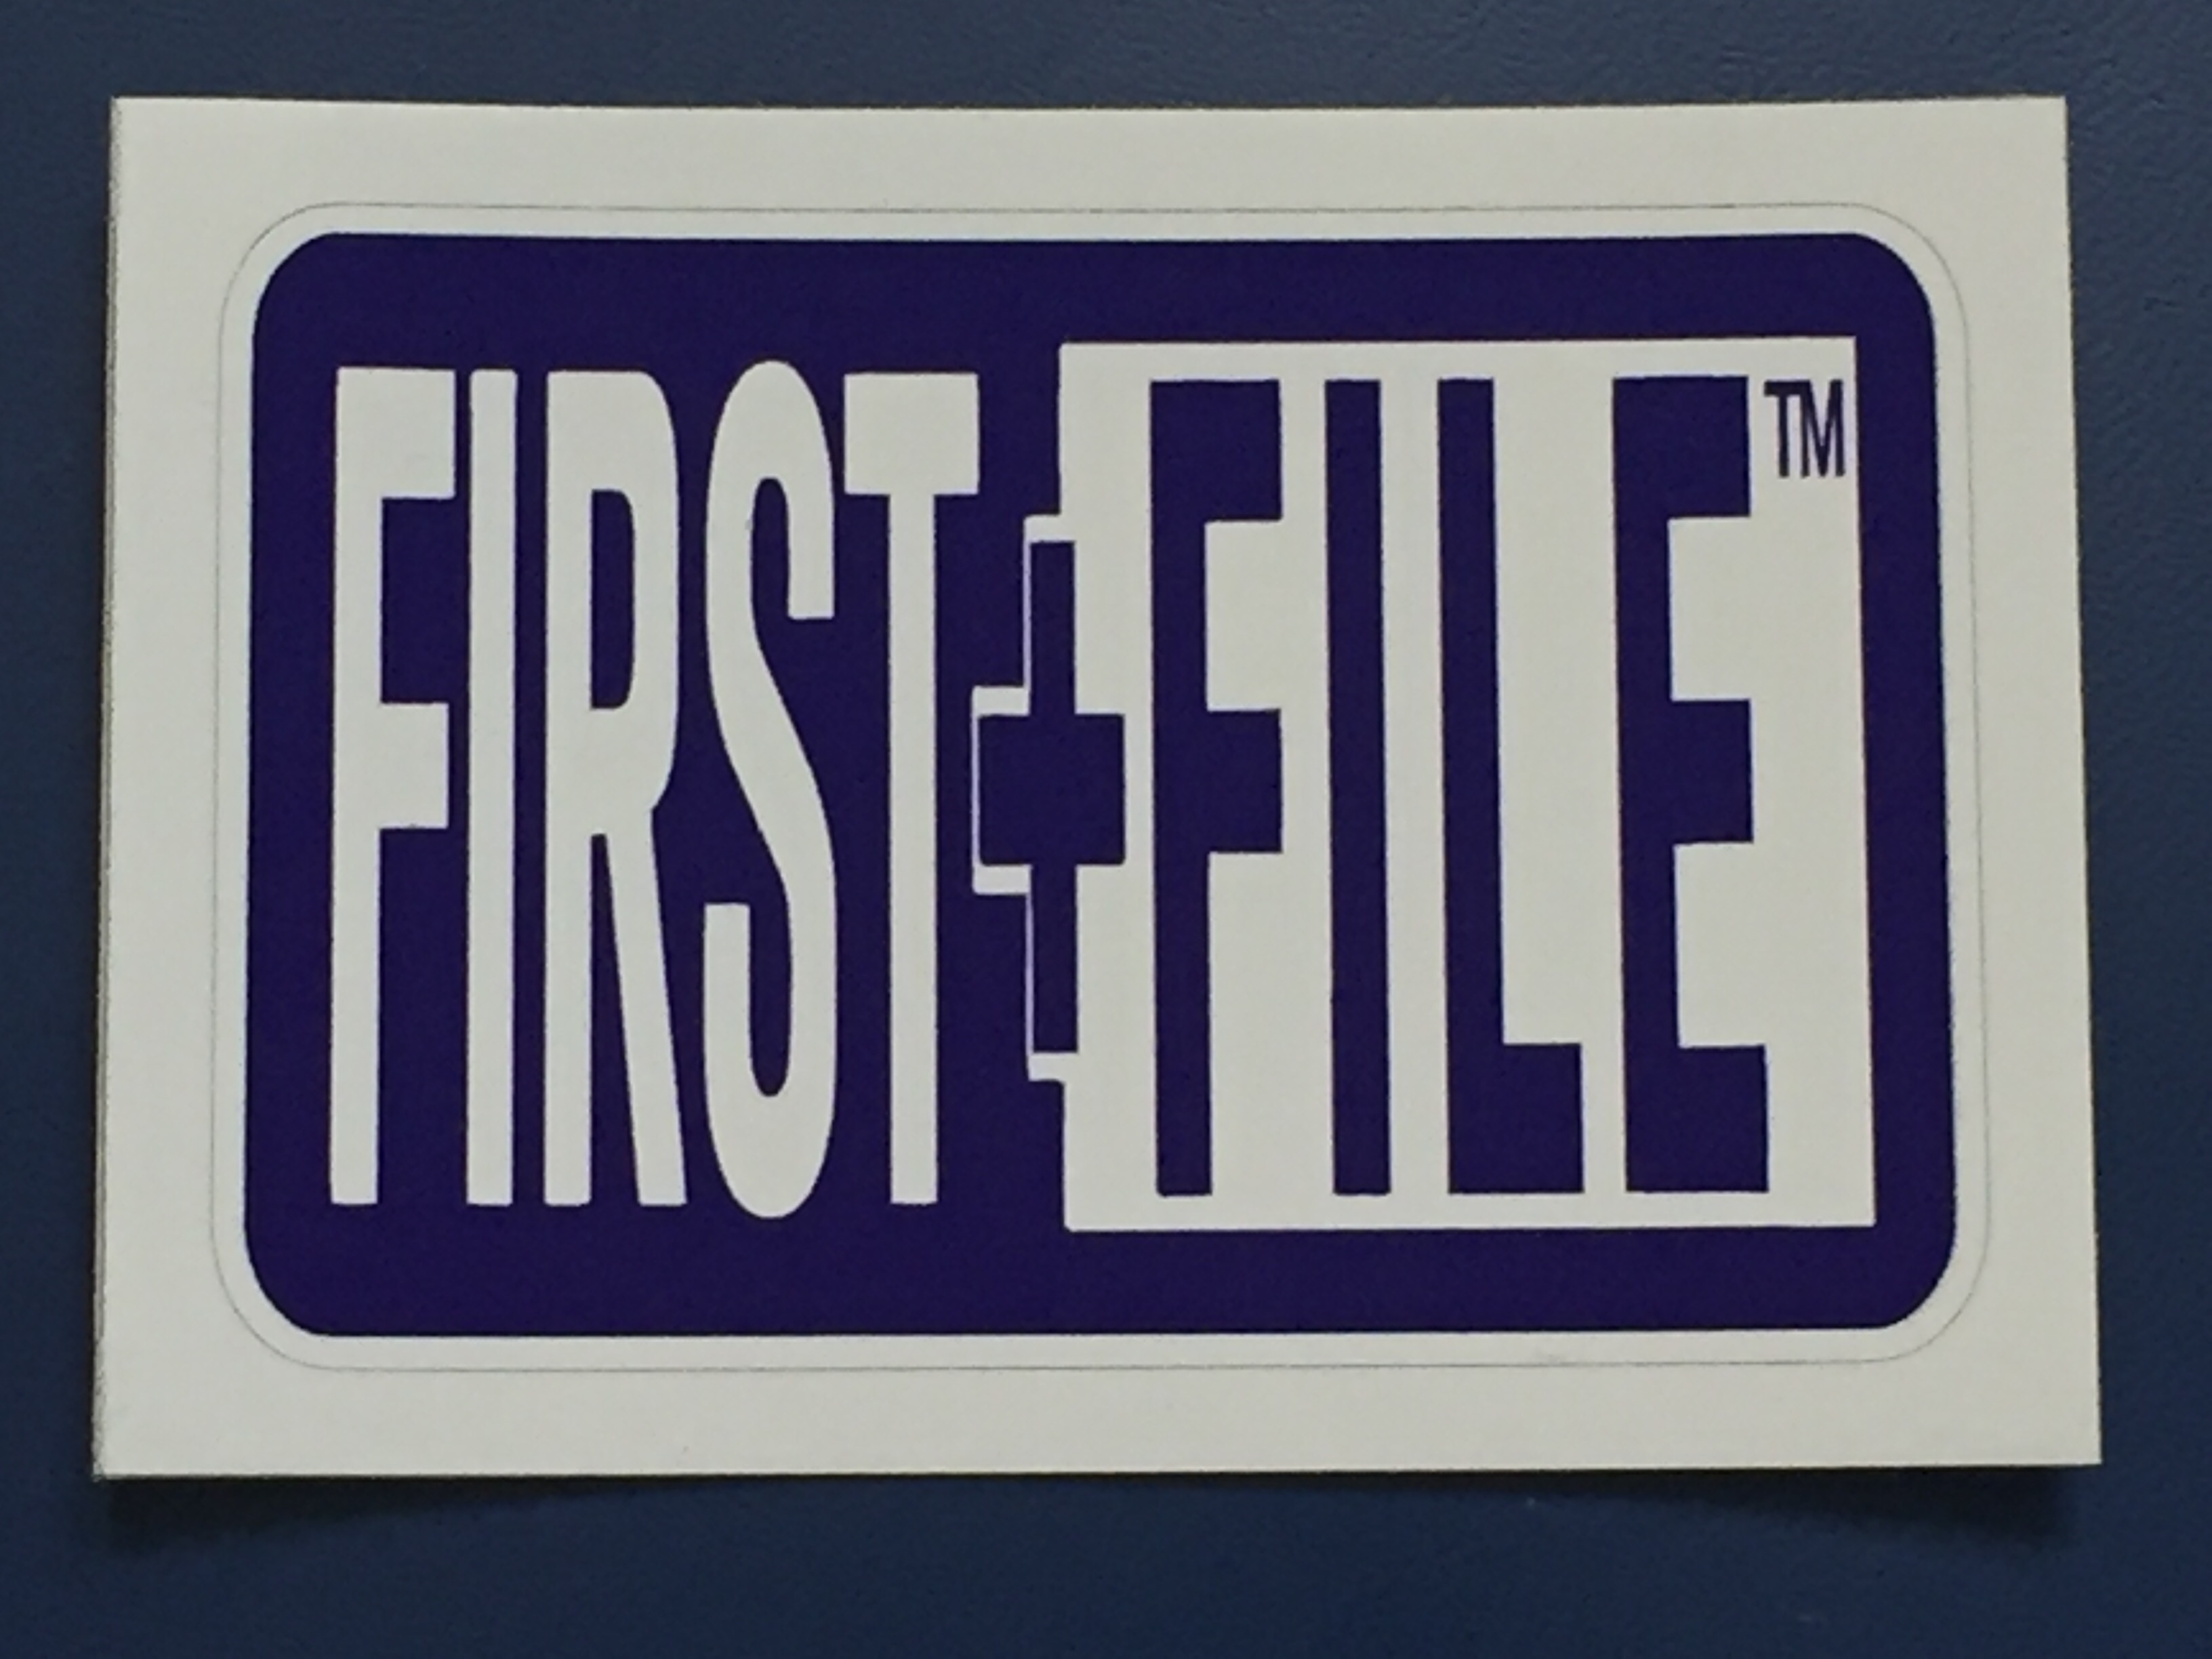 First File sticker (Photo by J. Schafer)